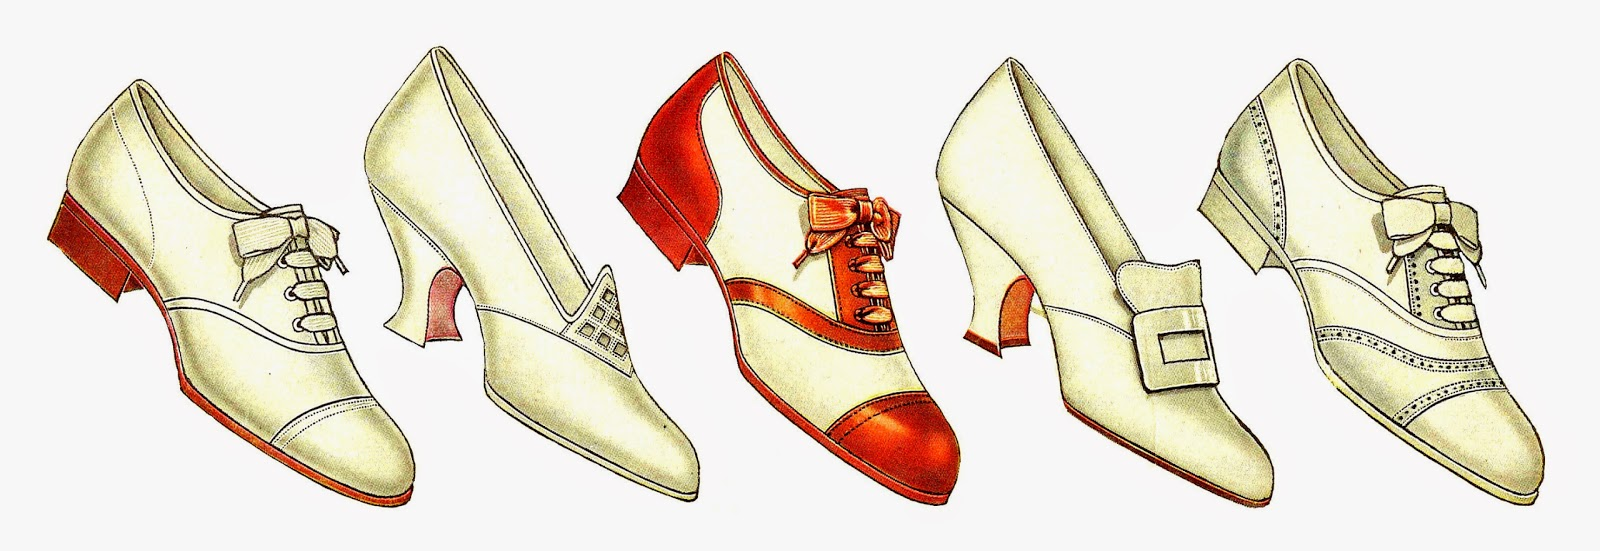 Antique Images: Free Fashion Clip Art: 5 Vintage Women's Shoe.